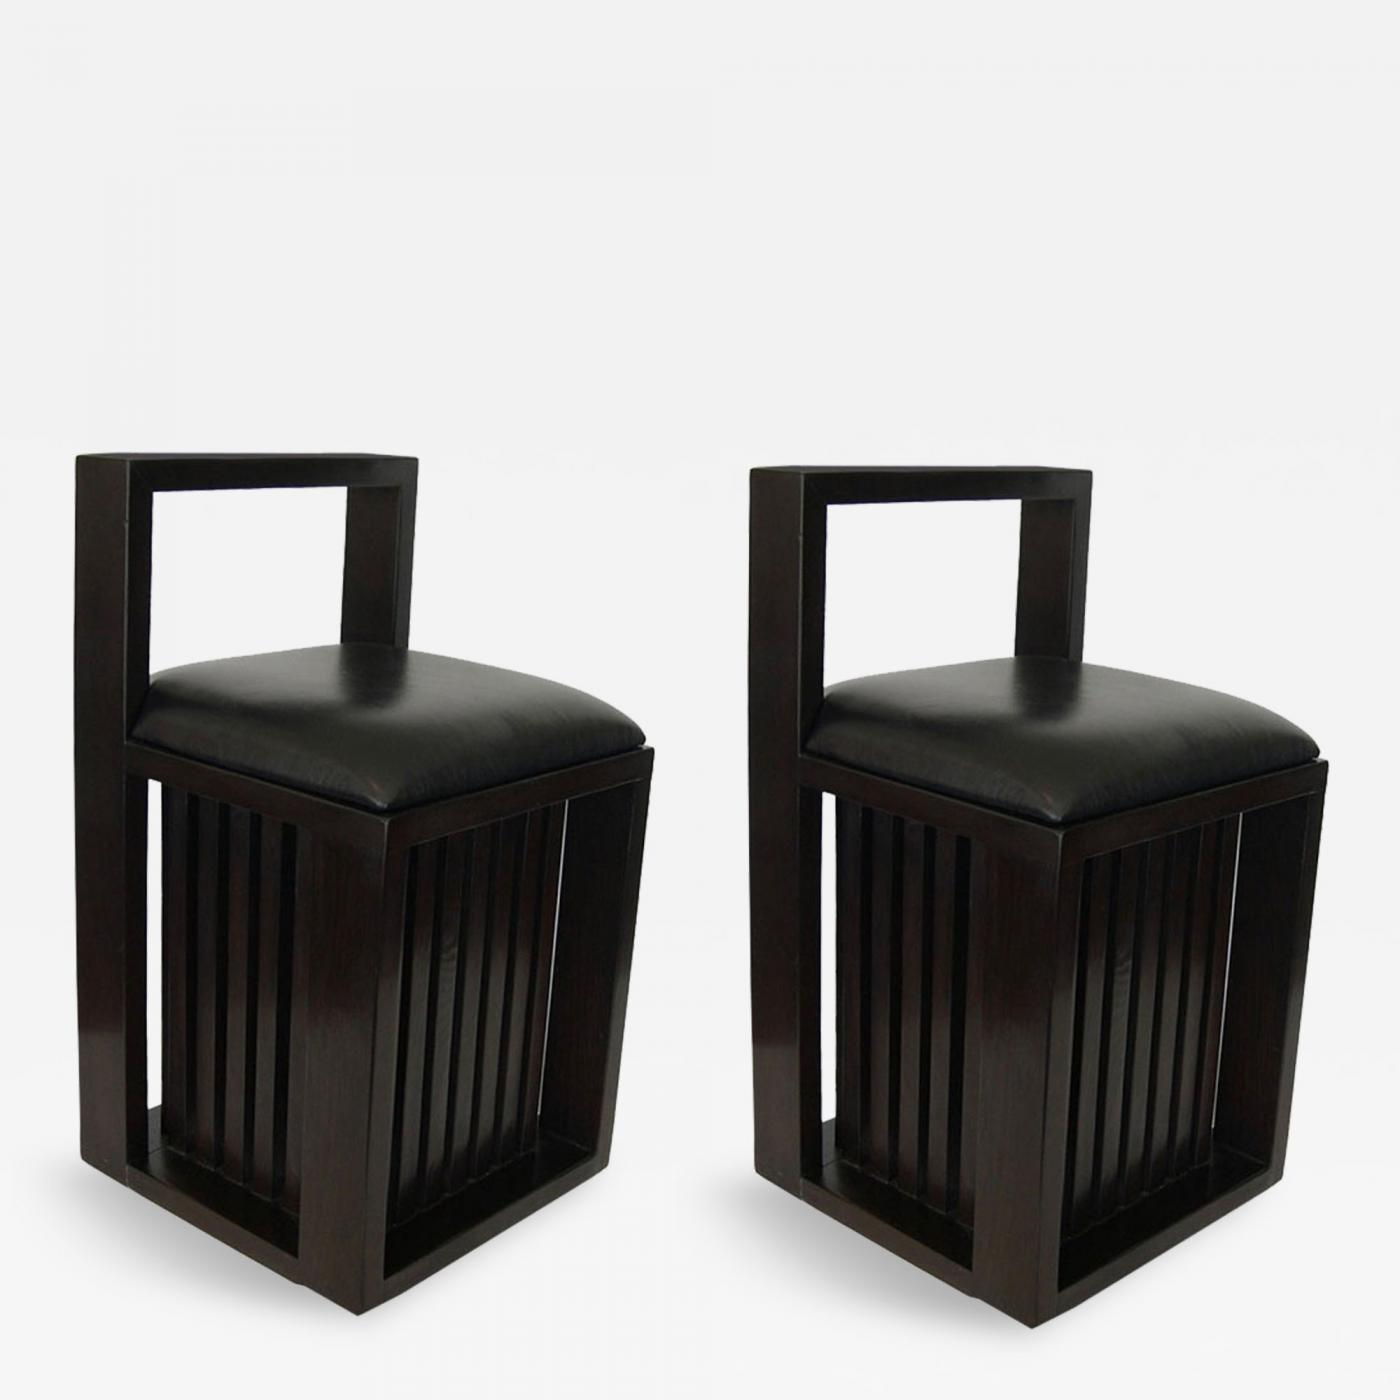 George Nelson Pair of Petite Chairs by E Noyes and George Nelson